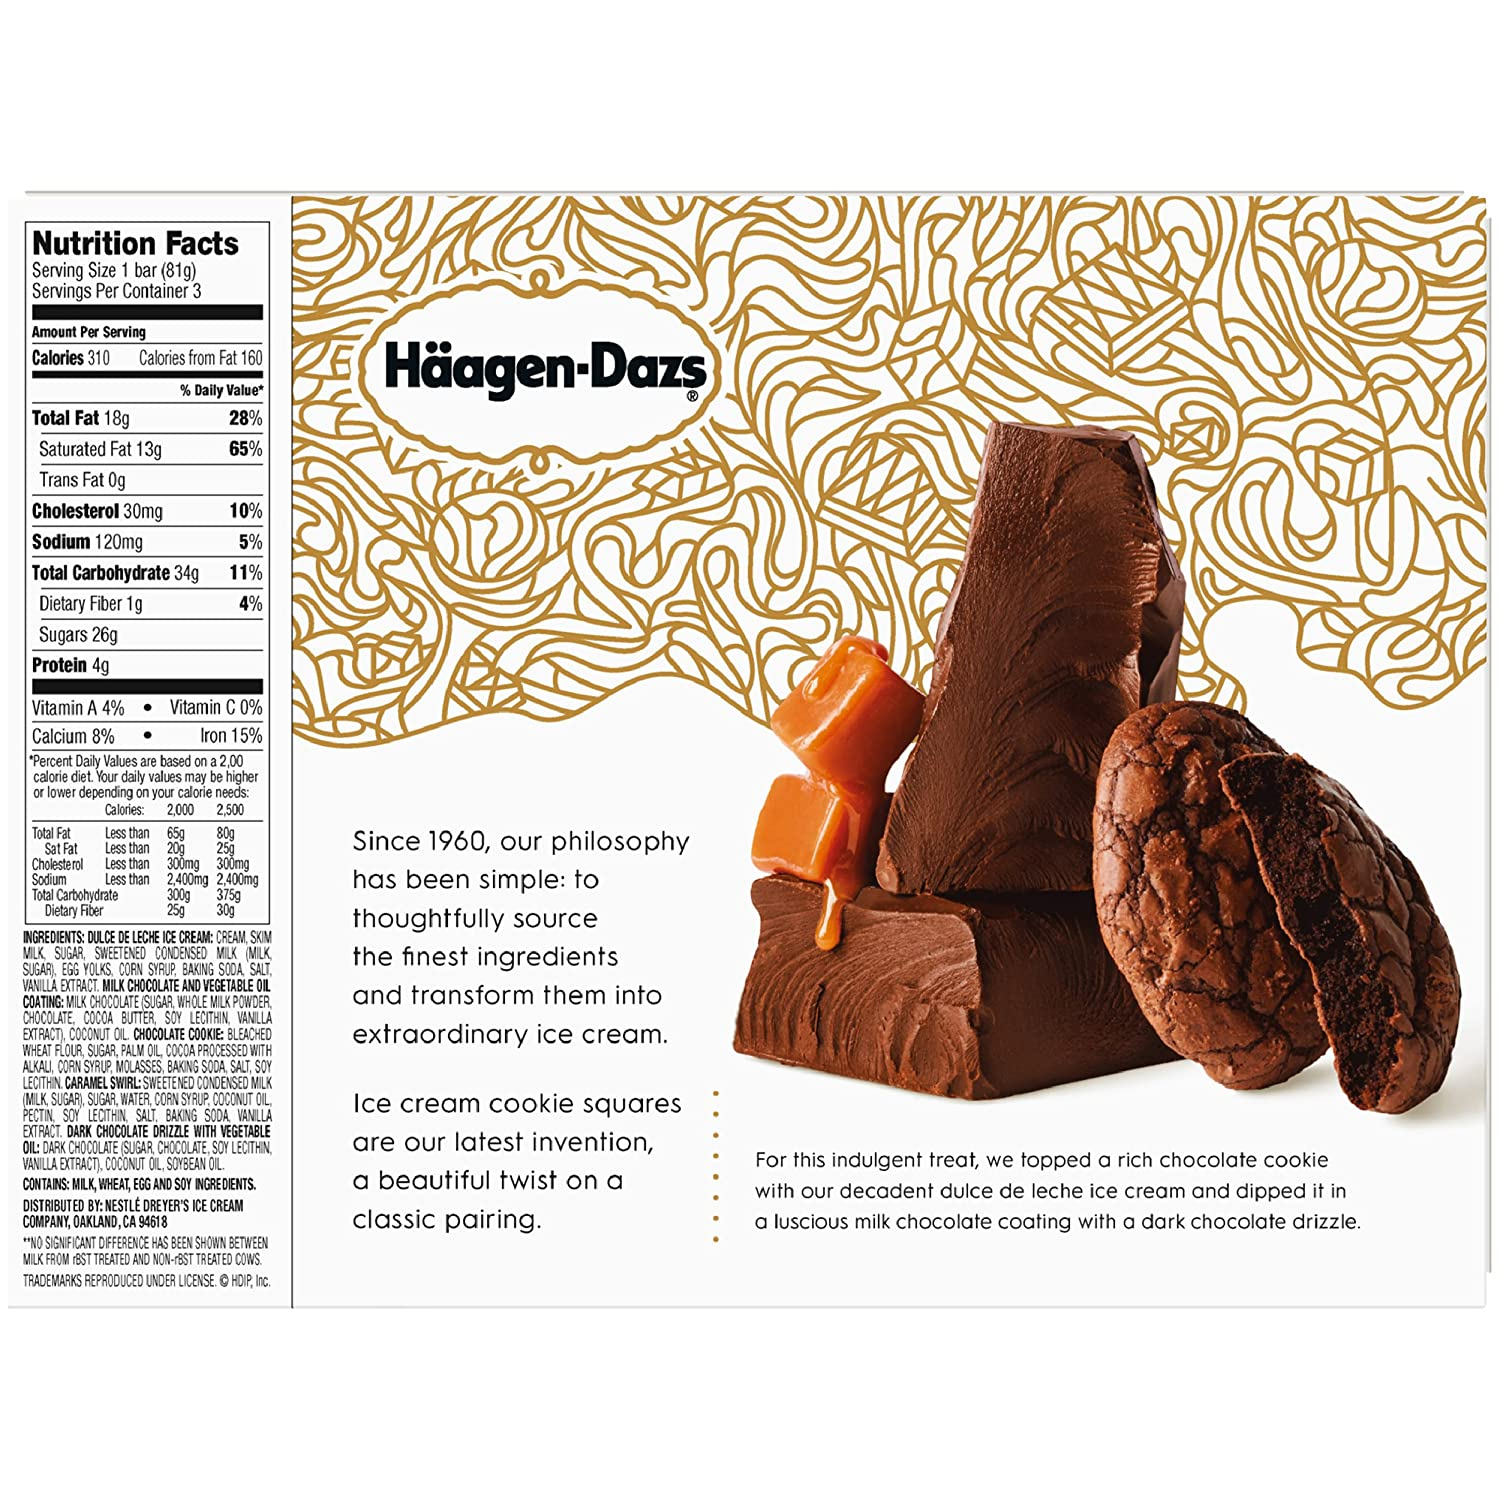 Haagen-Dazs Dulce De Leche Cookie Squares, 3 oz. Bars 3 Pack: Amazon.com: Grocery & Gourmet Food